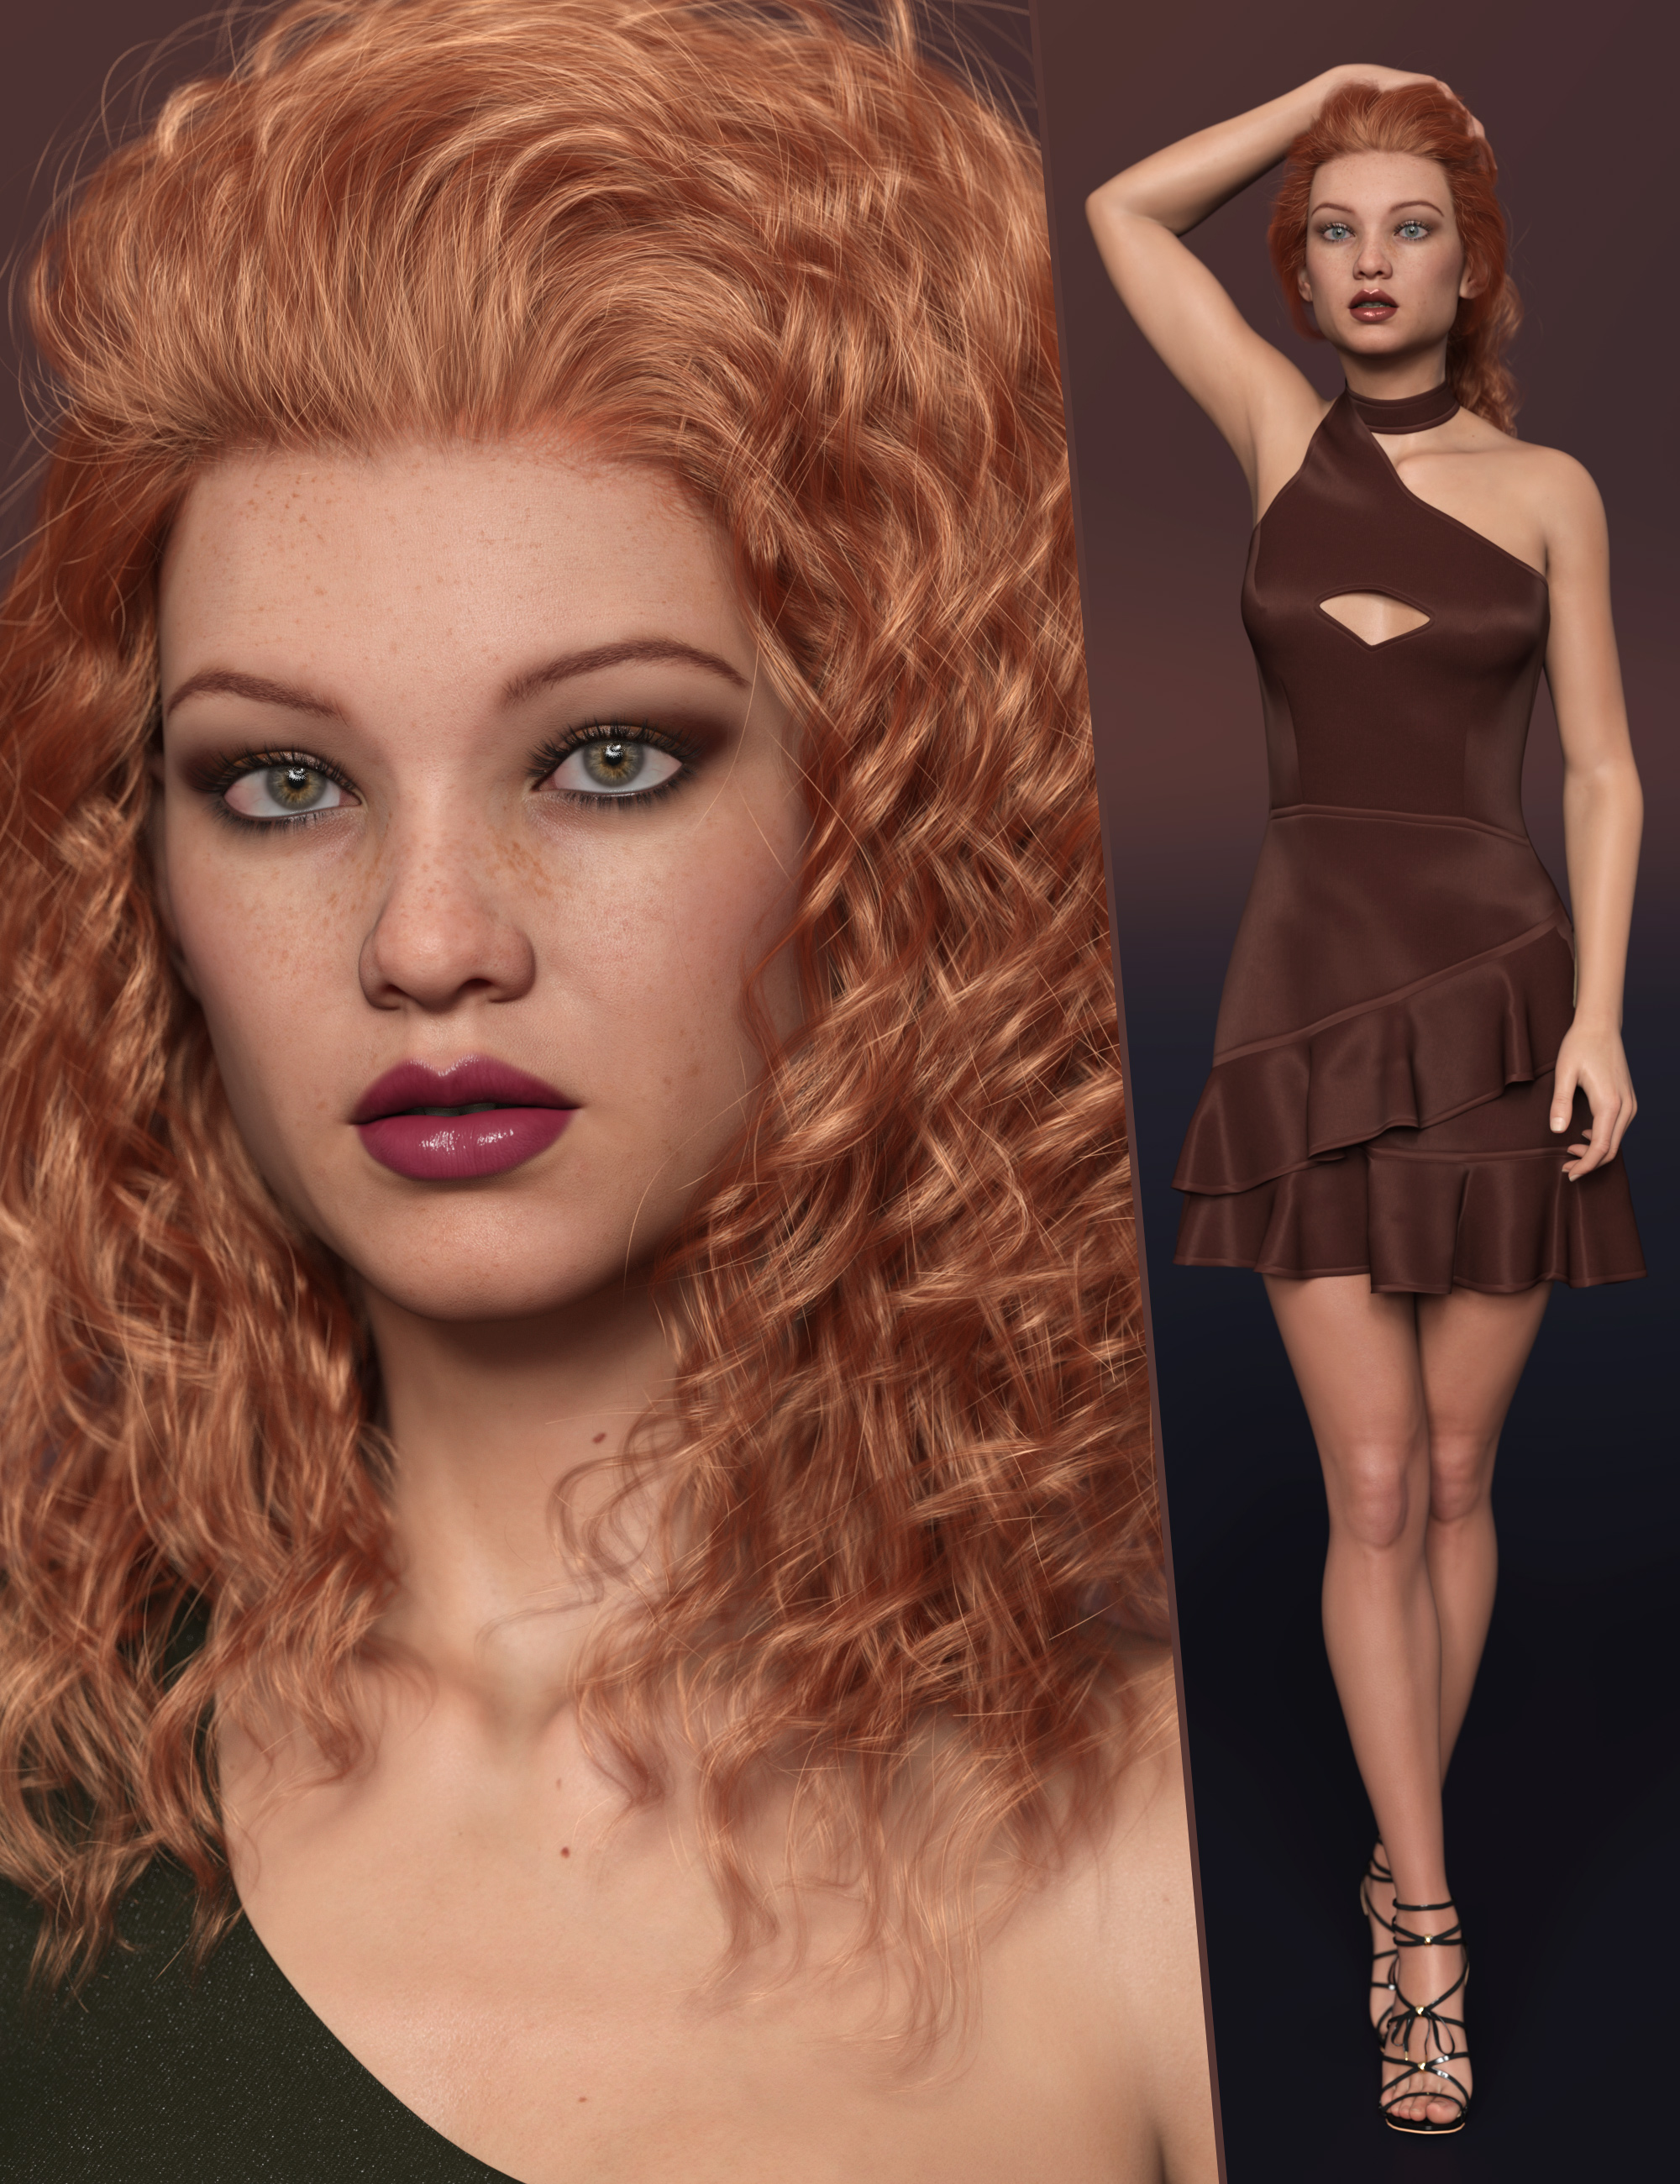 RY Norene Character and Hair Bundle by: outoftouchRaiya, 3D Models by Daz 3D